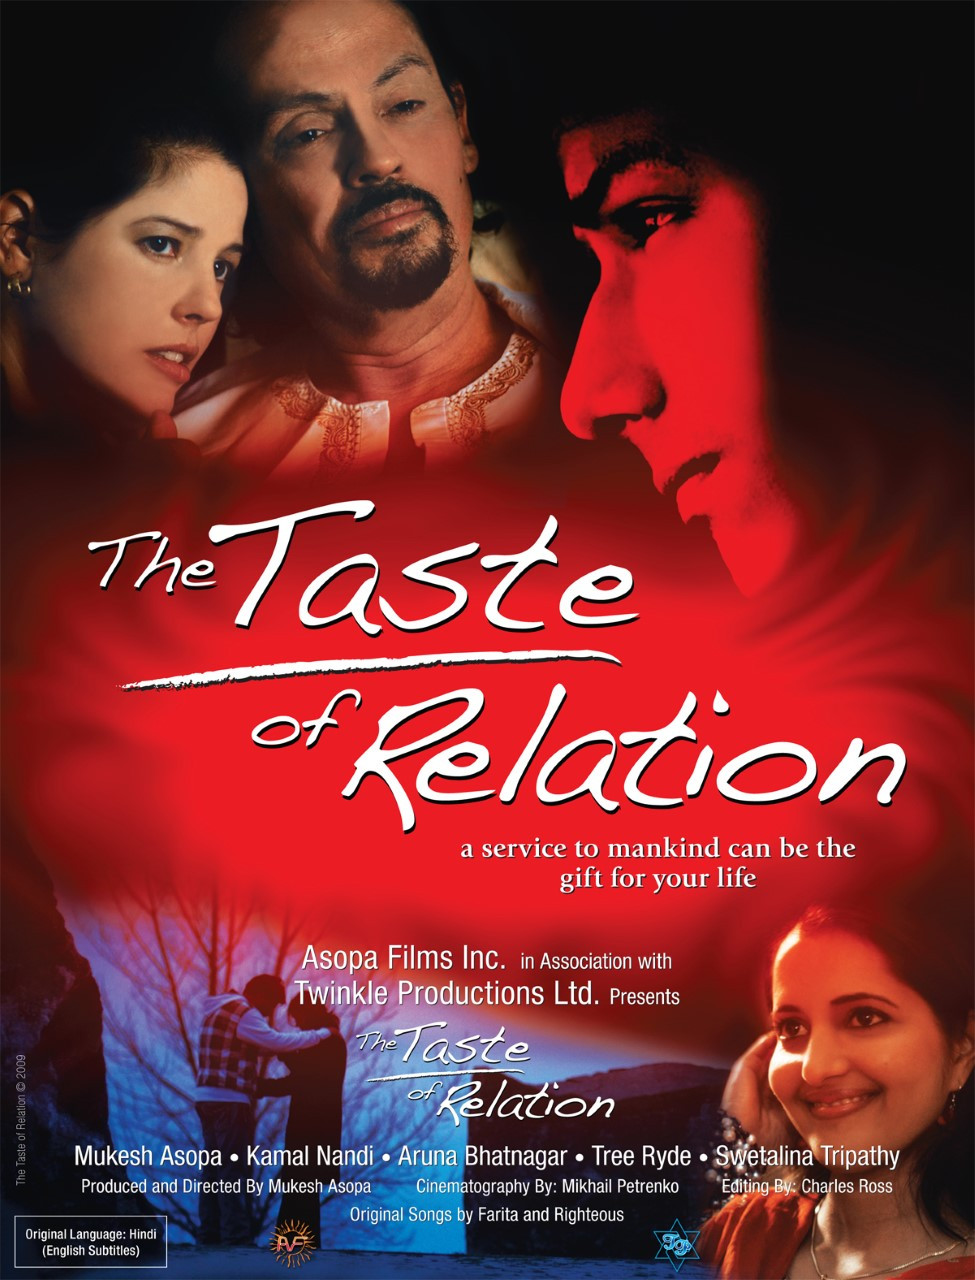 Poster for The Taste of Relation showing protagonists.